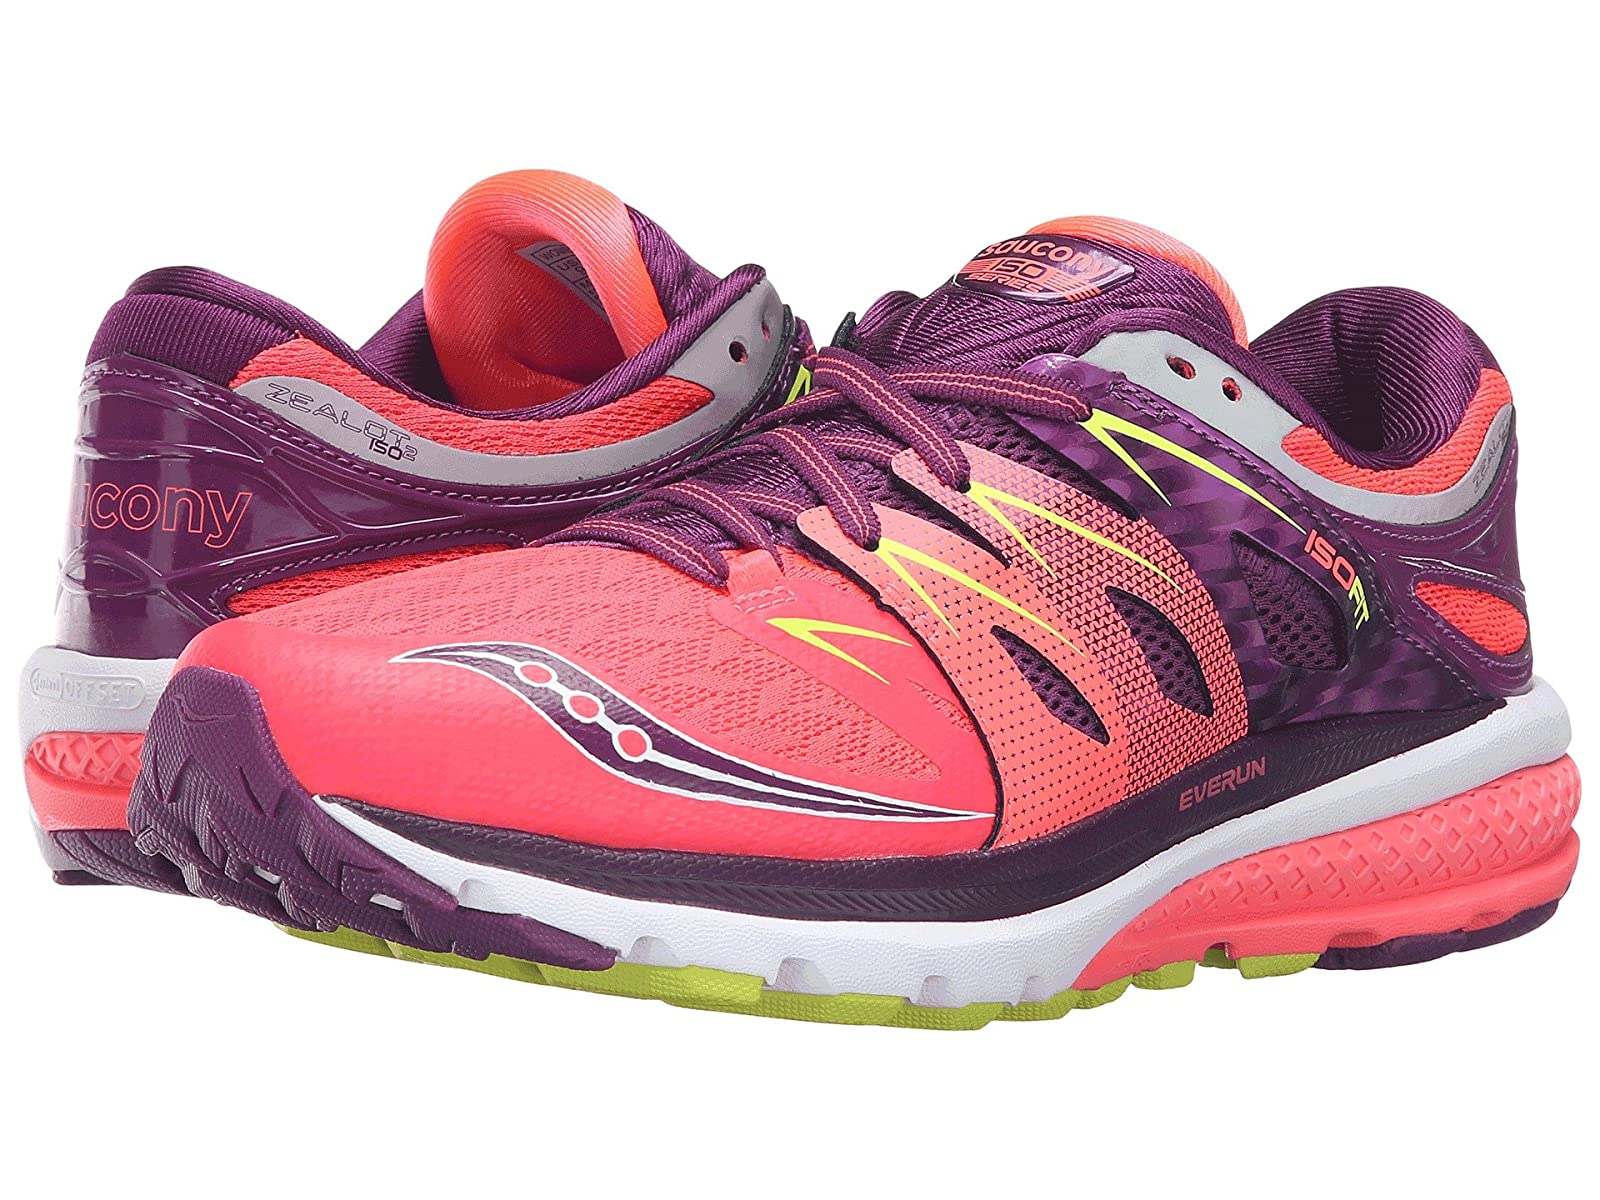 Saucony Zealot ISO 2Cheap and distinctive eye-catching shoes